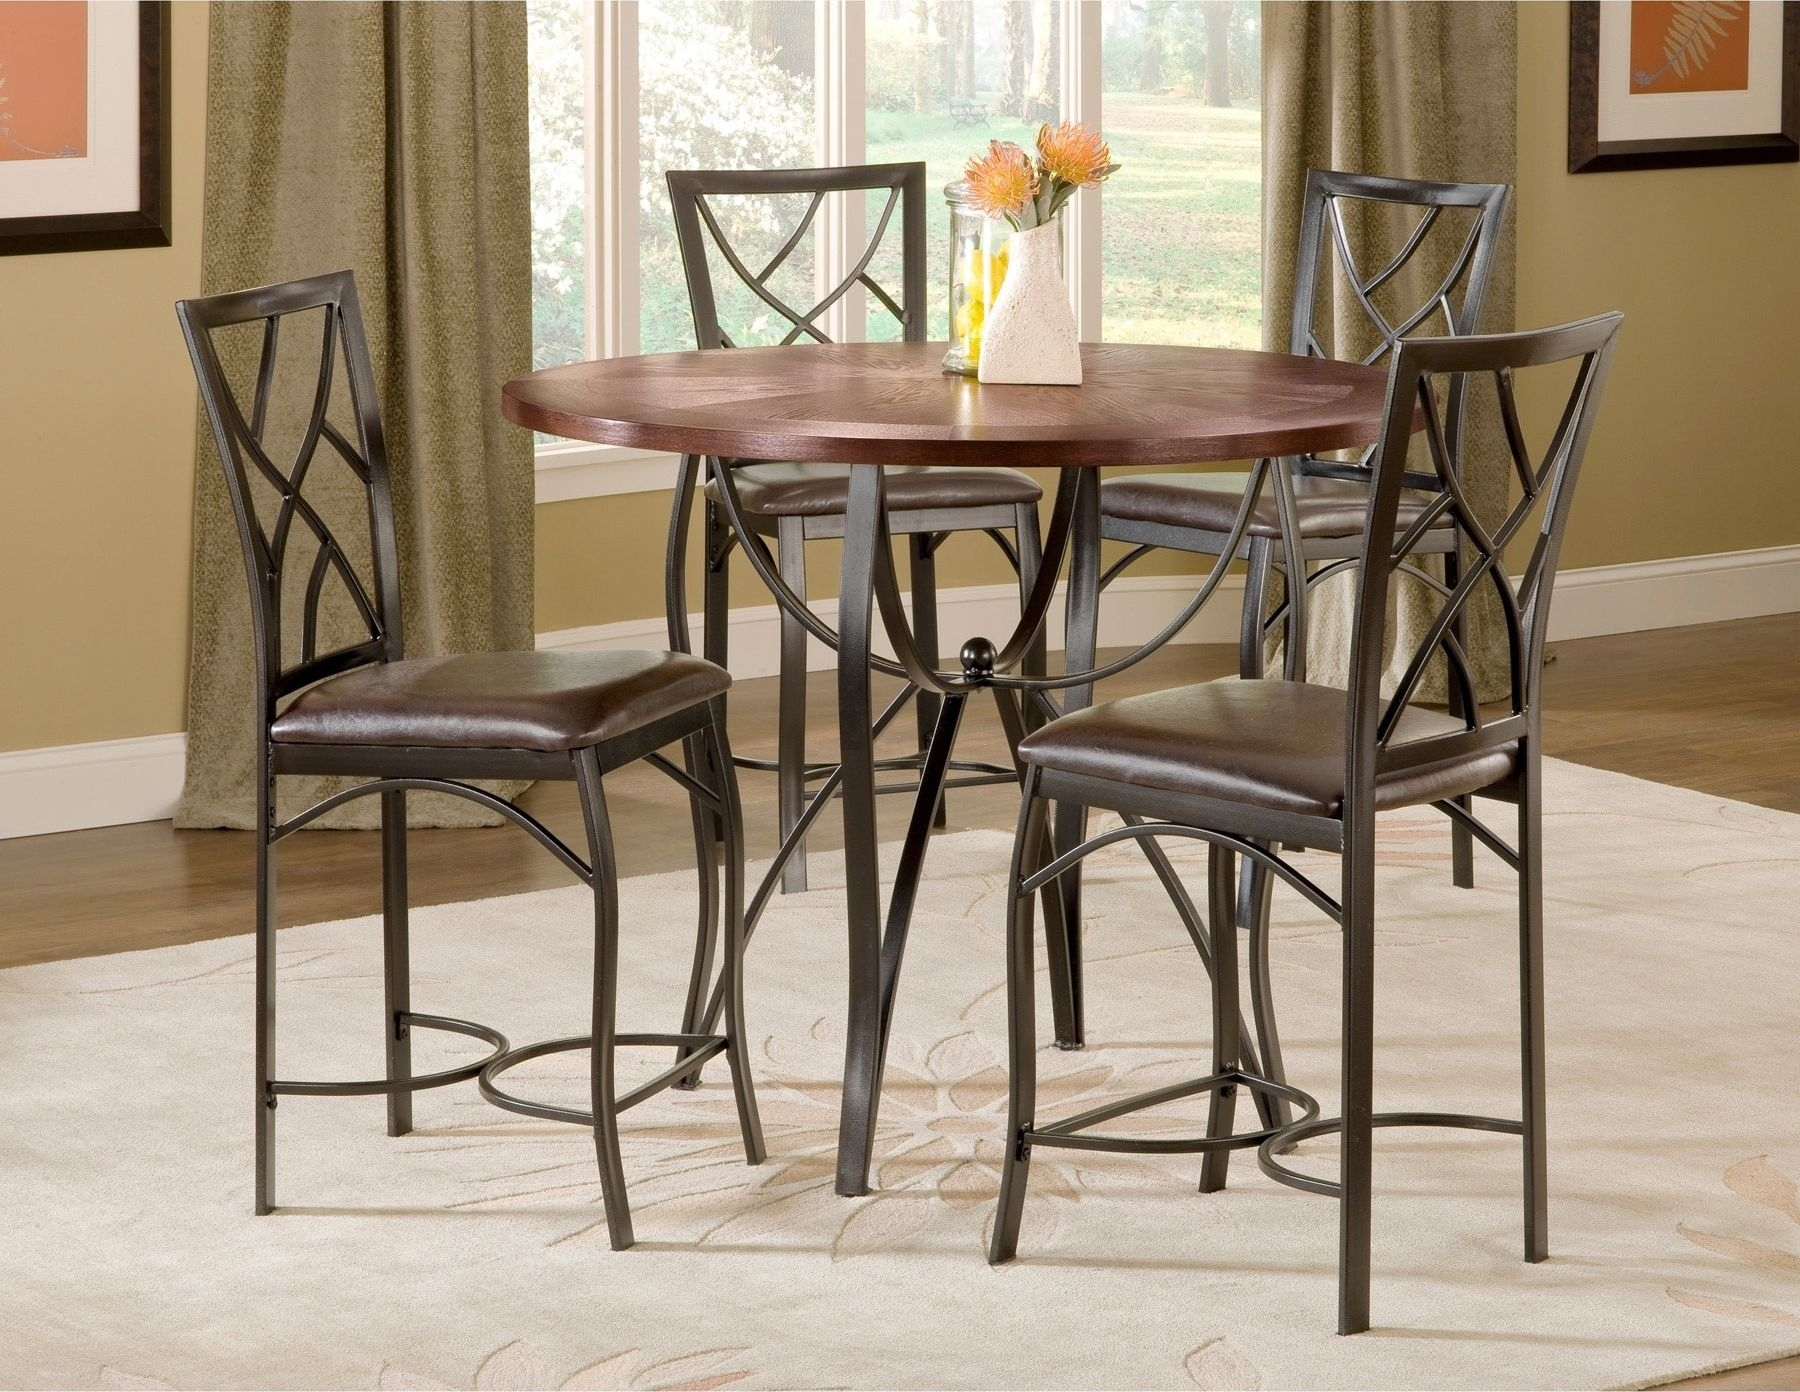 Sanford Merlot 5 Piece Counter Height Table And 4 Chairs Black Metal Pertaining To 2018 Craftsman 9 Piece Extension Dining Sets With Uph Side Chairs (View 4 of 20)